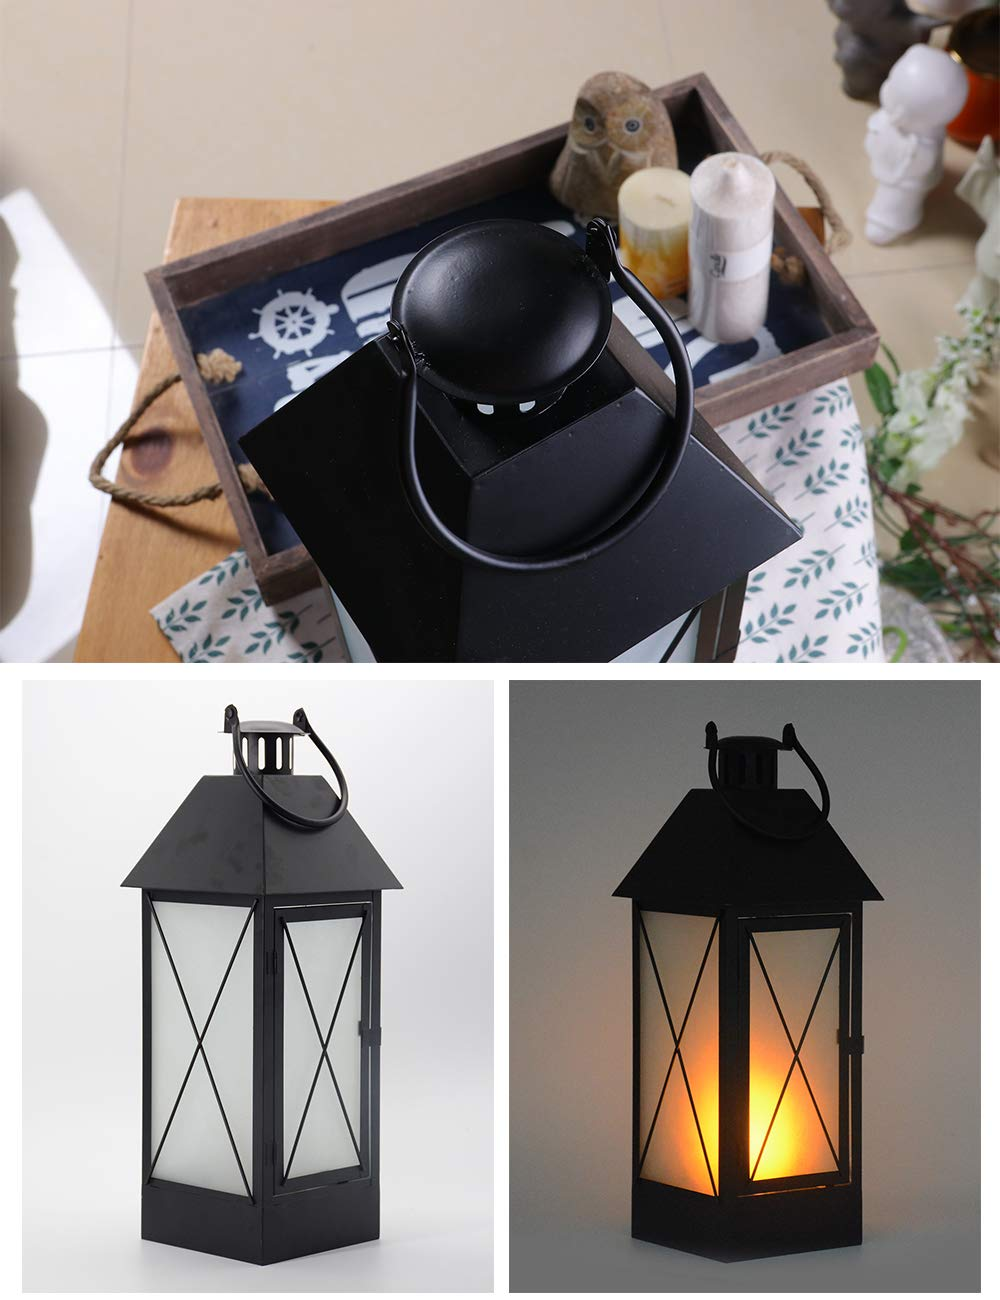 HomeBerry 16 Battery Operated LED Bulb Decorative Flame Effect Hanging Candle Lantern Table Desk Lamp Candle Holder Christmas Decoration Living Bedroom Office Kicthen Lantern Lighting Lamp